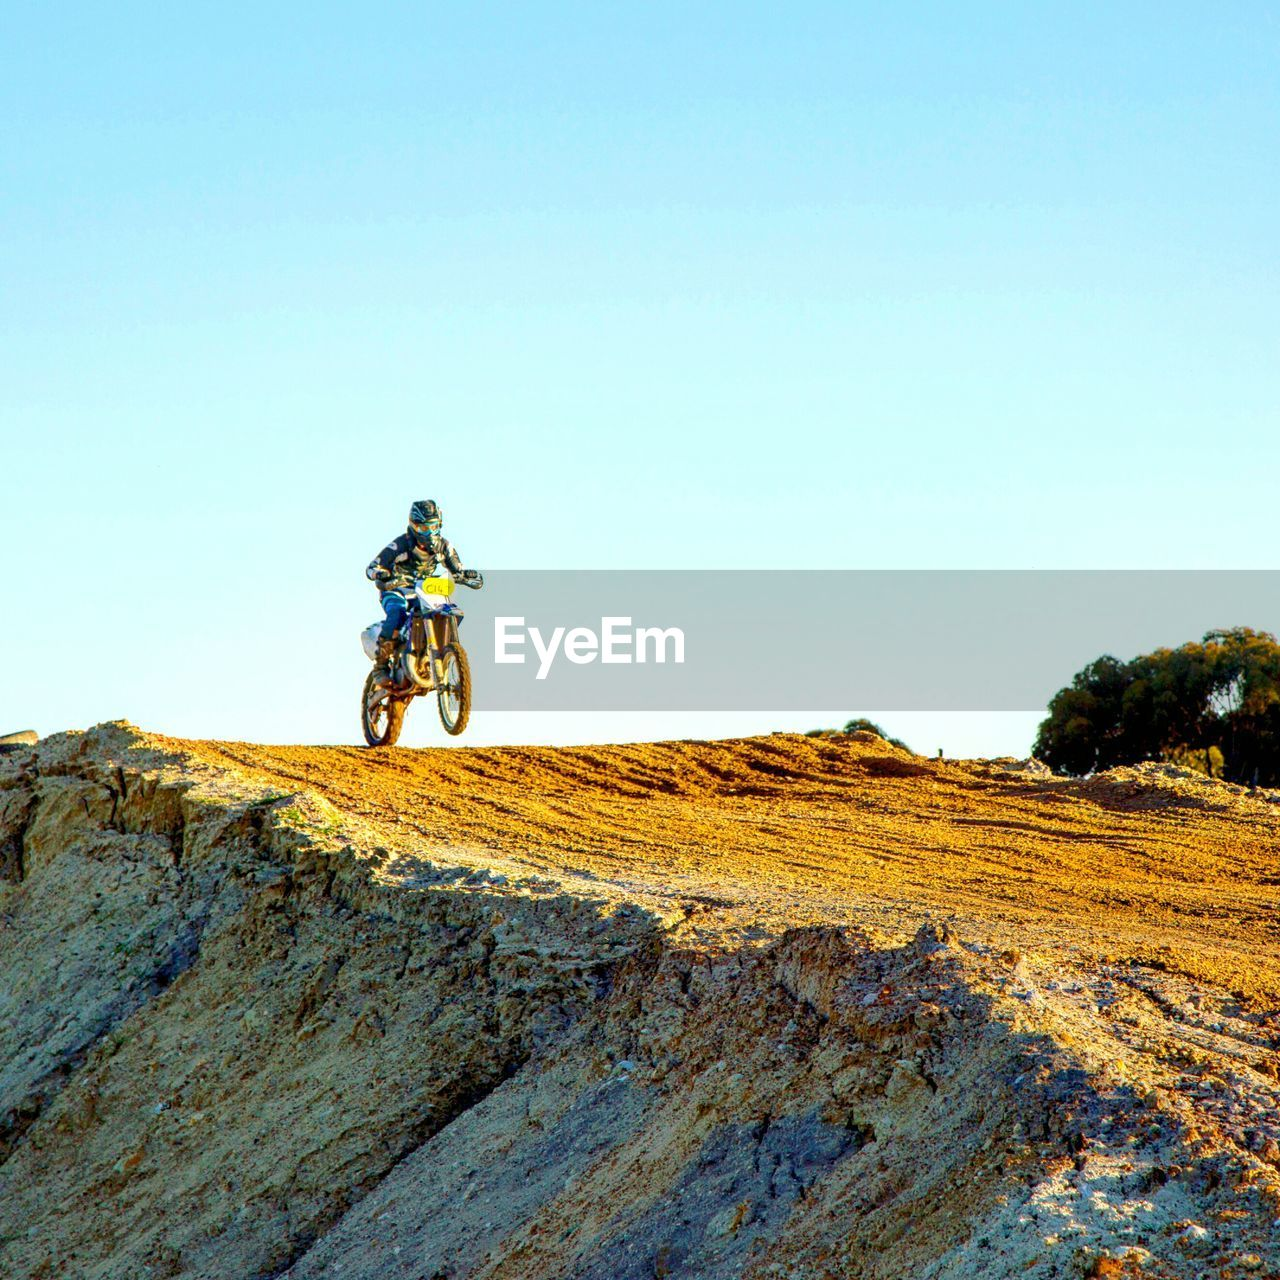 Low Angle View Of Motocross Biker On Track Against Sky